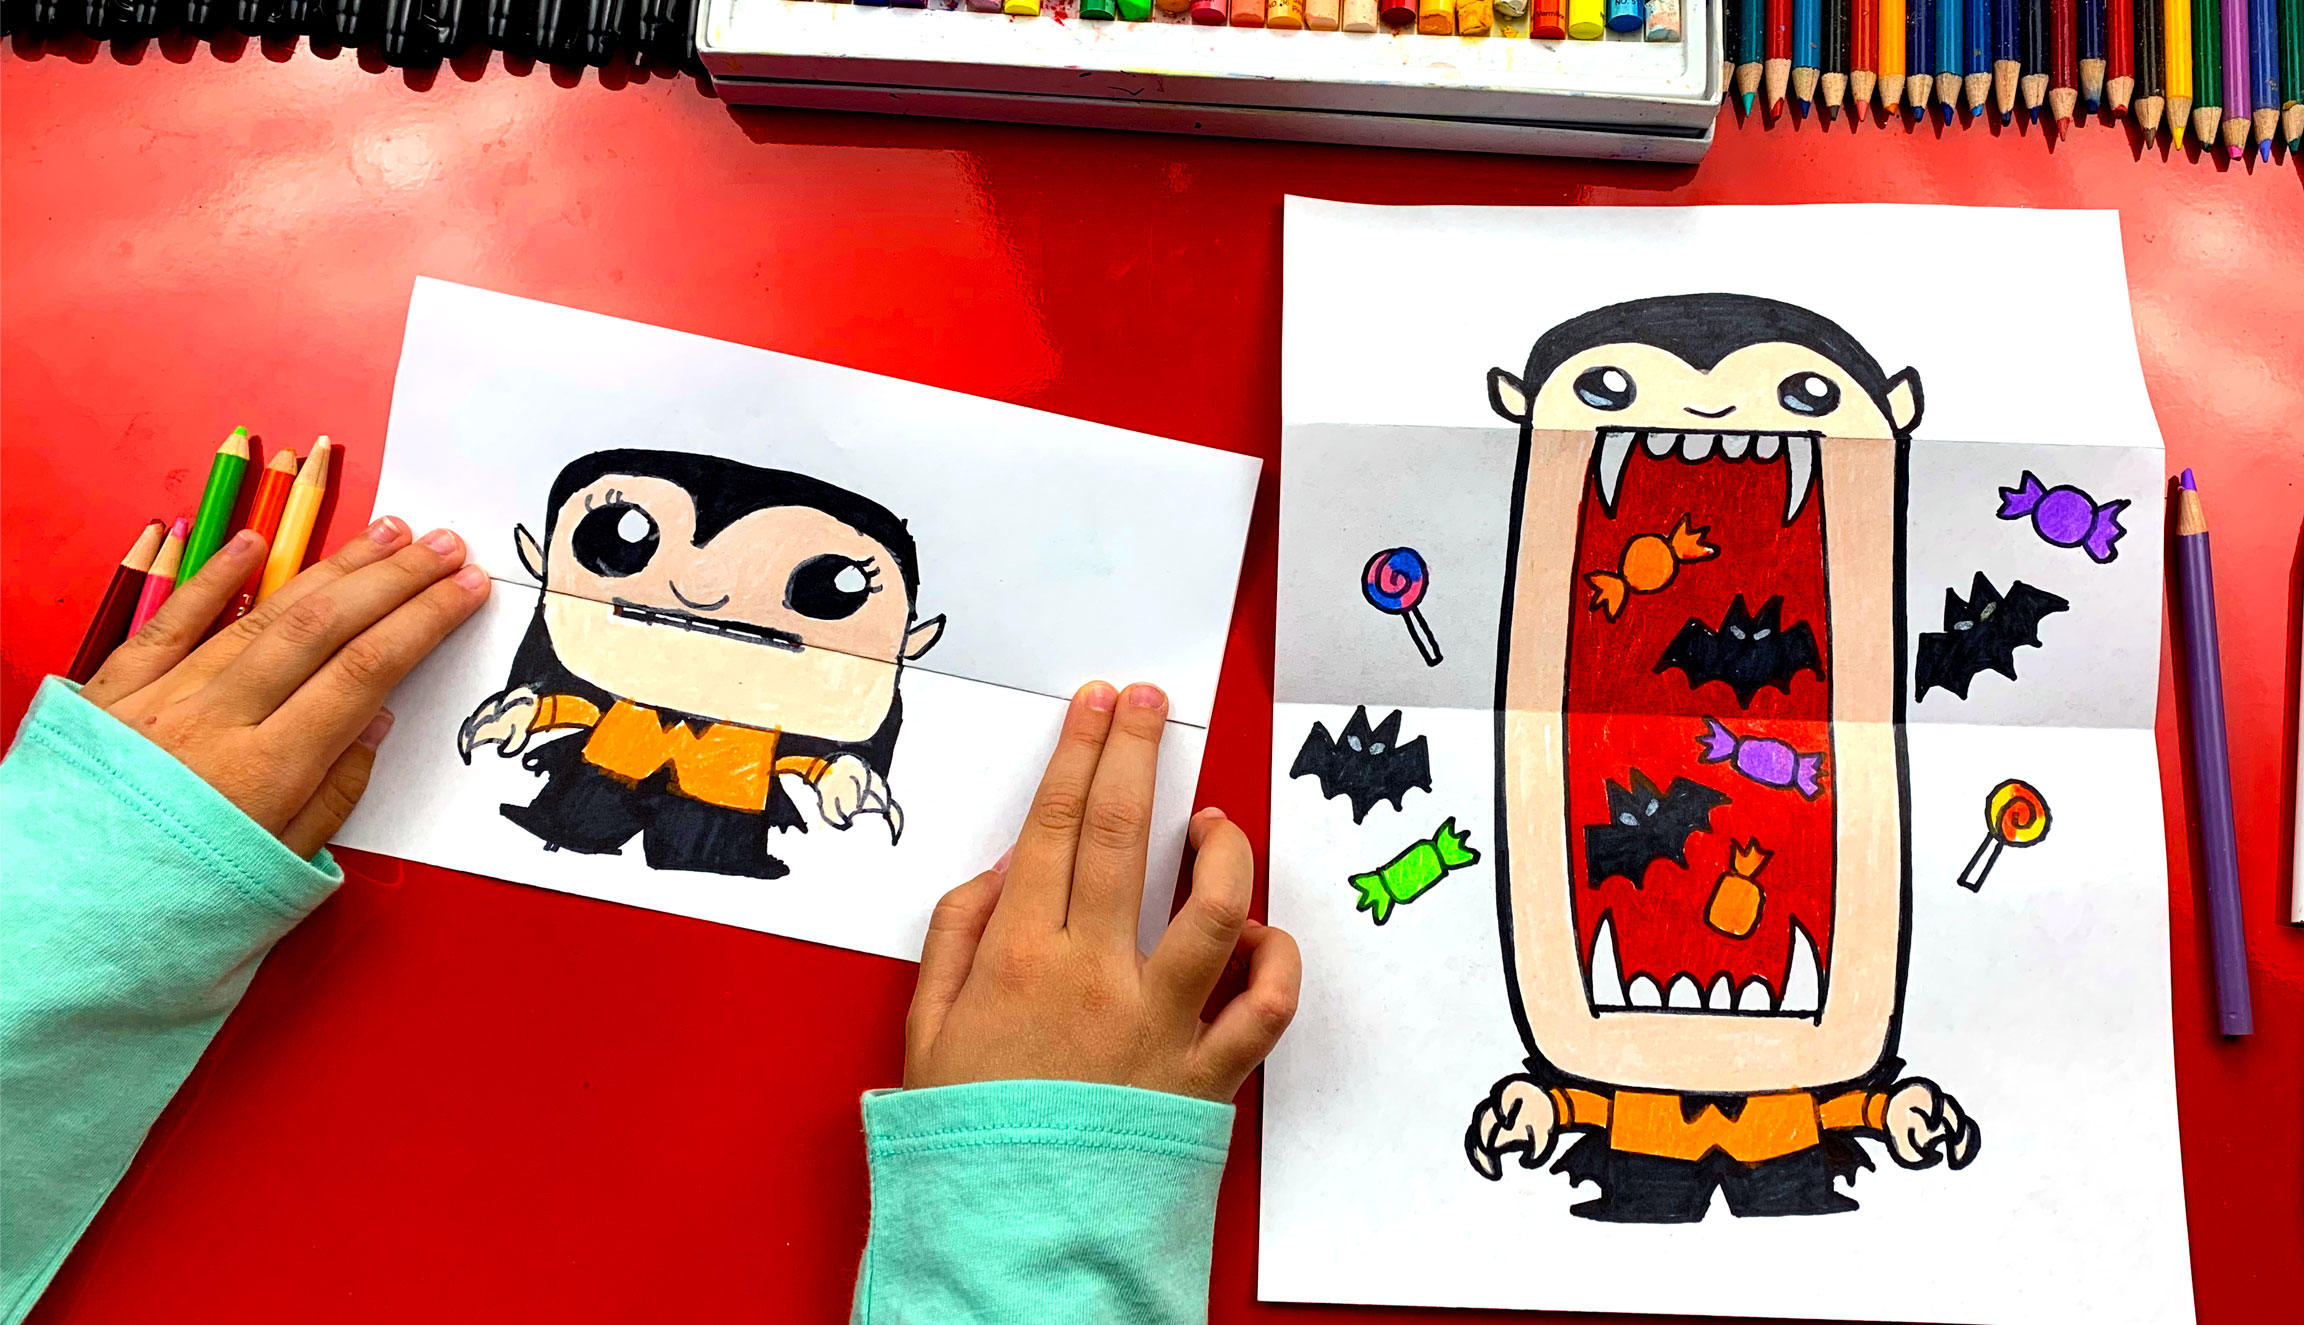 How To Draw A Big Mouth Vampire Folding Surprise Art